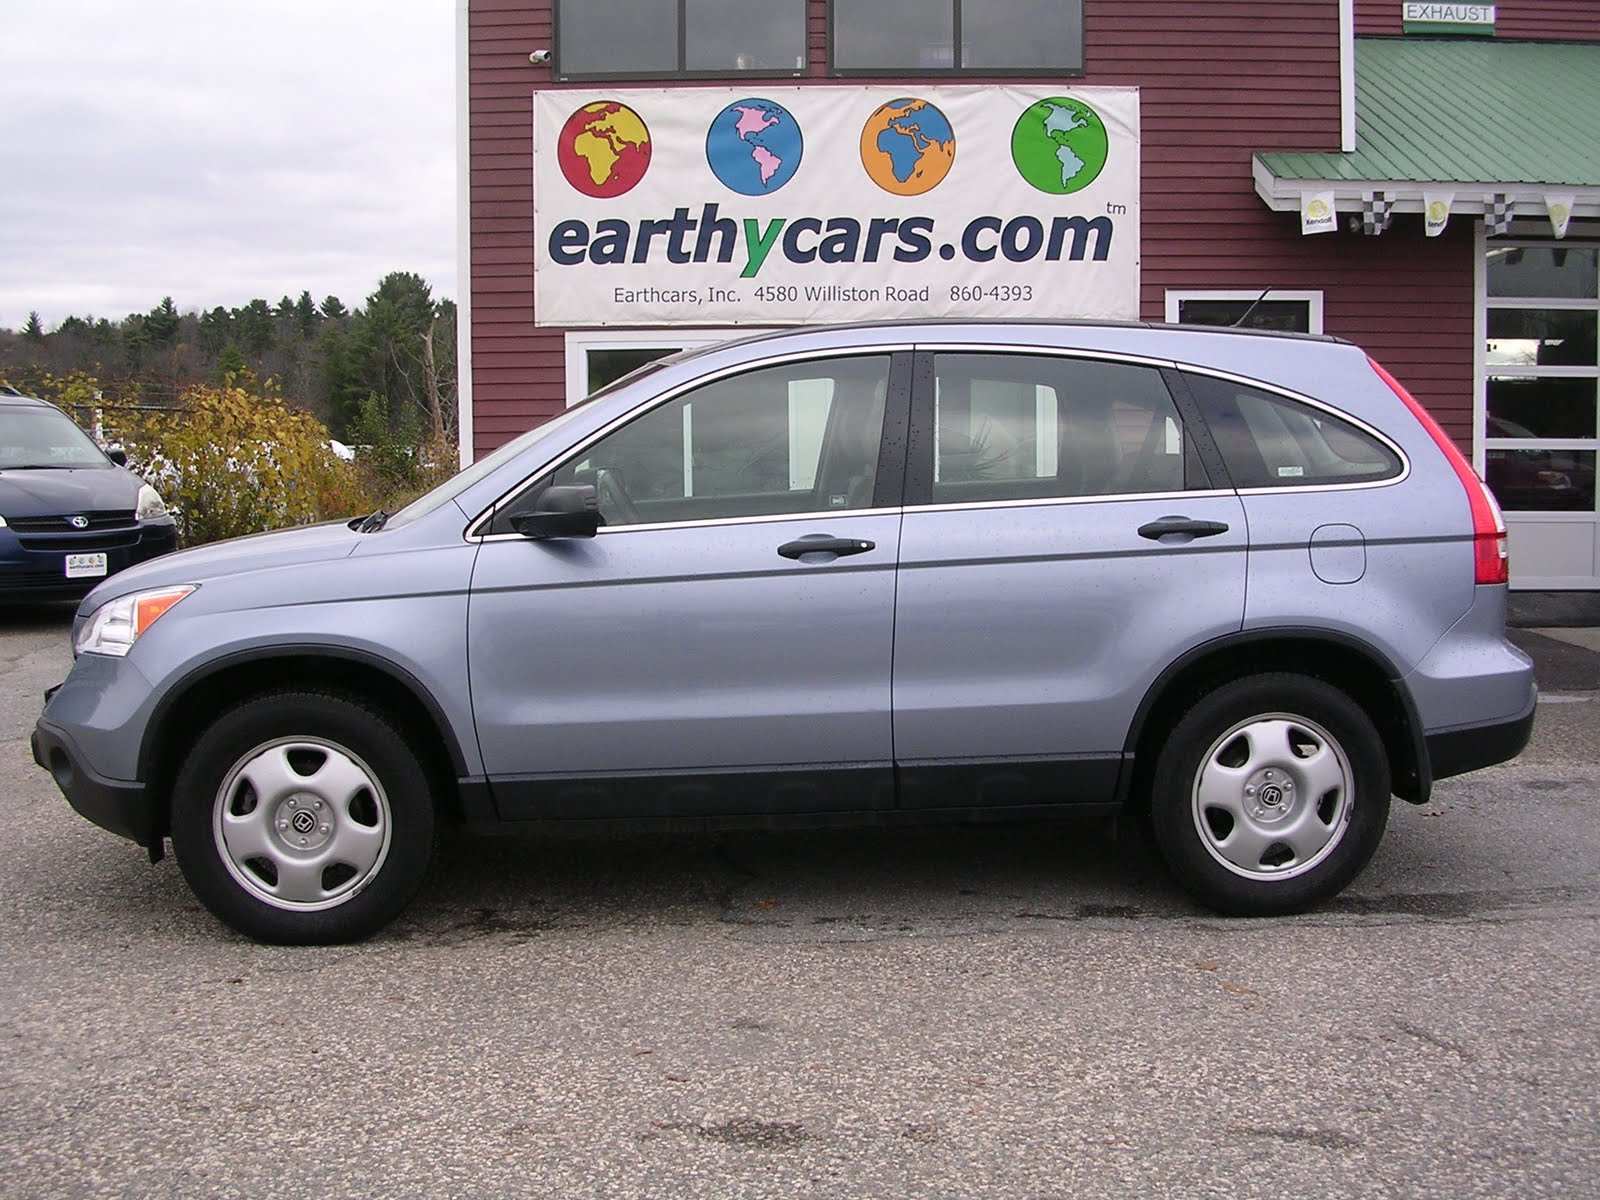 EARTHY CAR OF THE WEEK: Blue 2008 Honda CR-V LX 4WD